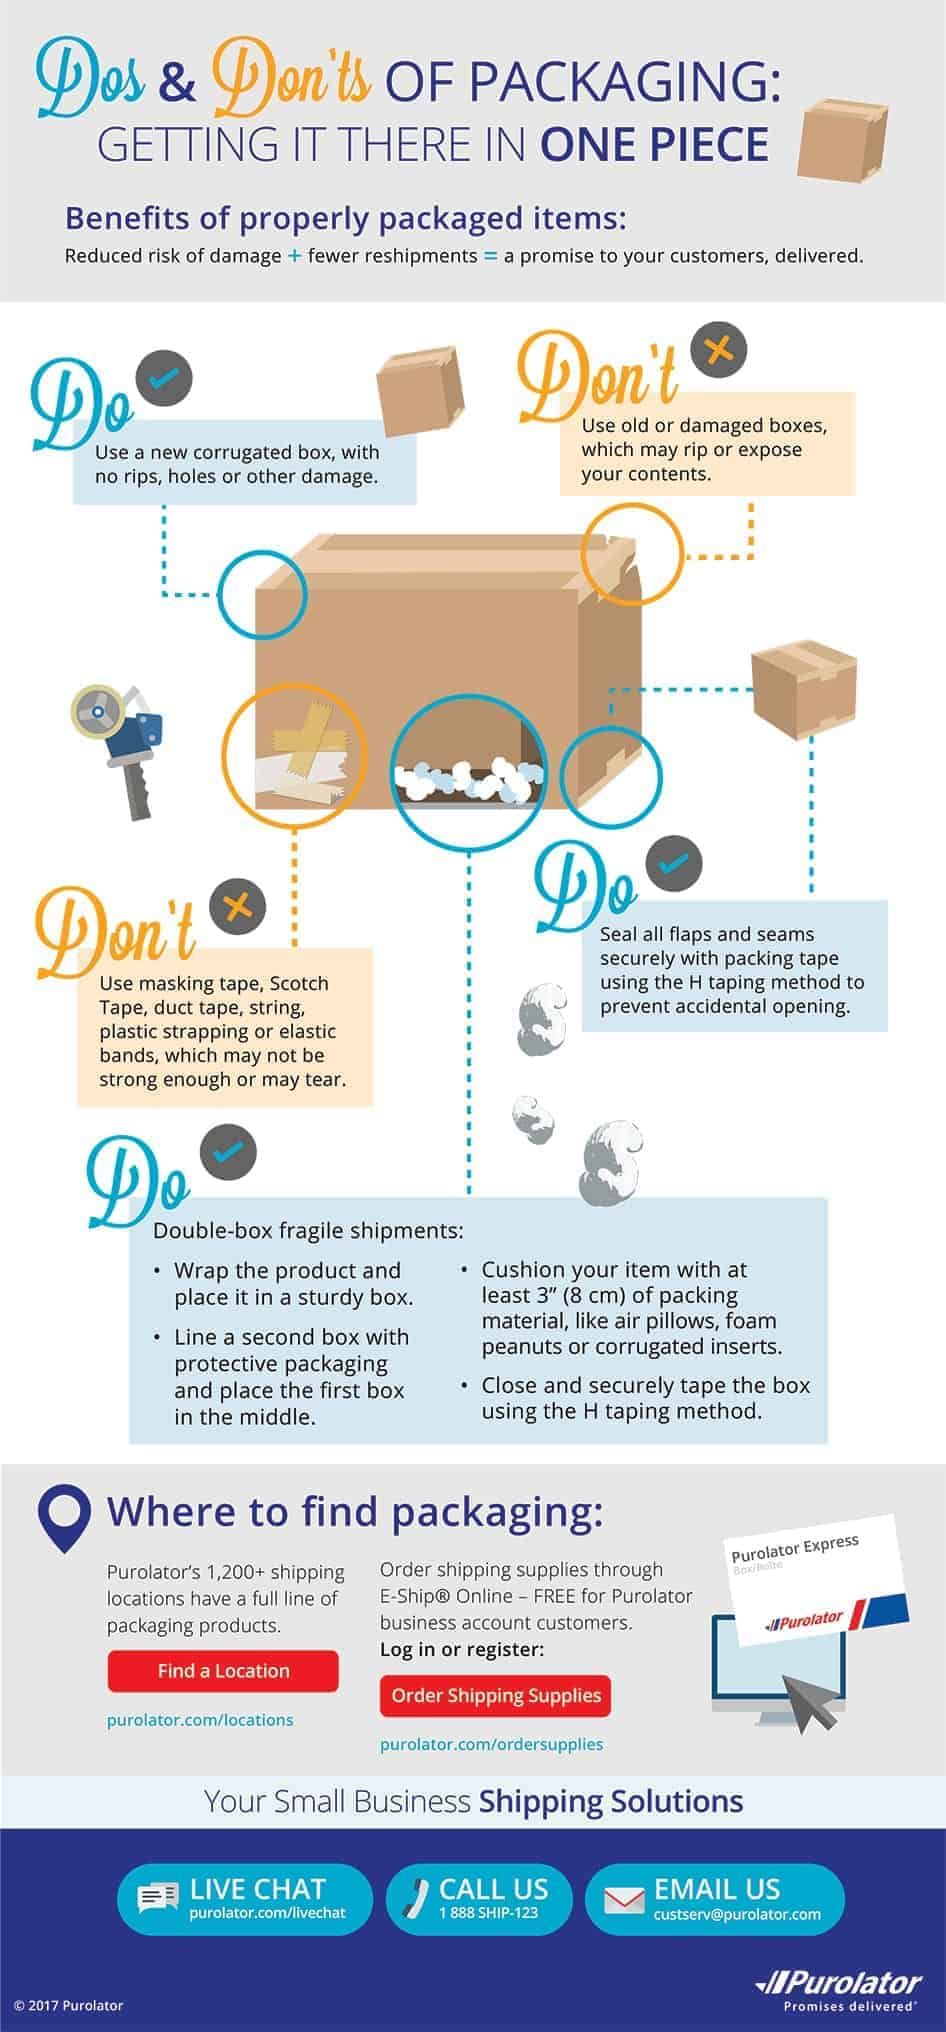 Dos and Donts of Packaging infographic